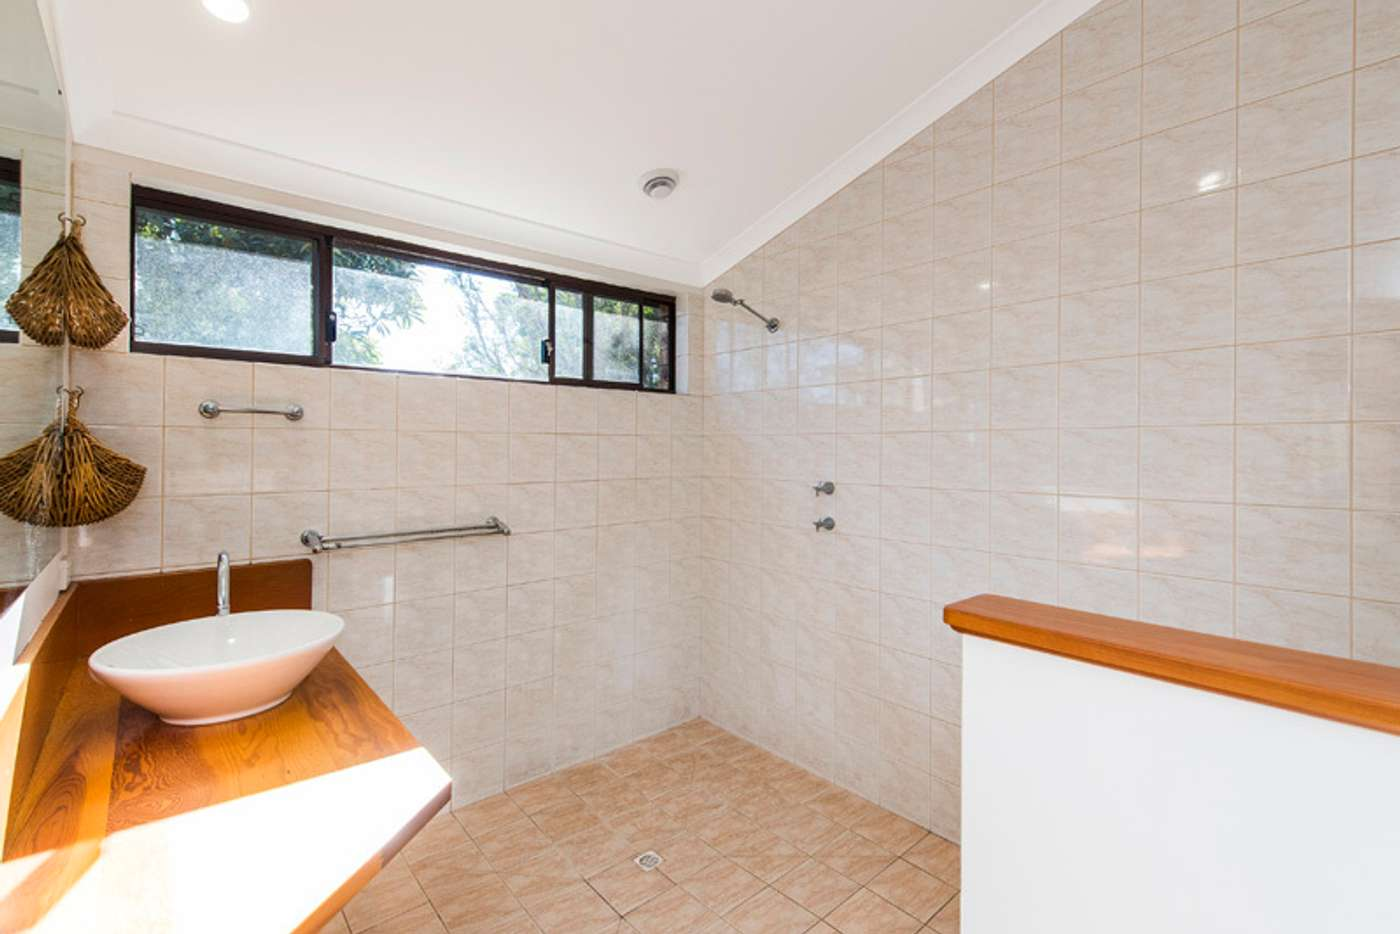 Sixth view of Homely house listing, 175 Medulla Road, Jarrahdale WA 6124